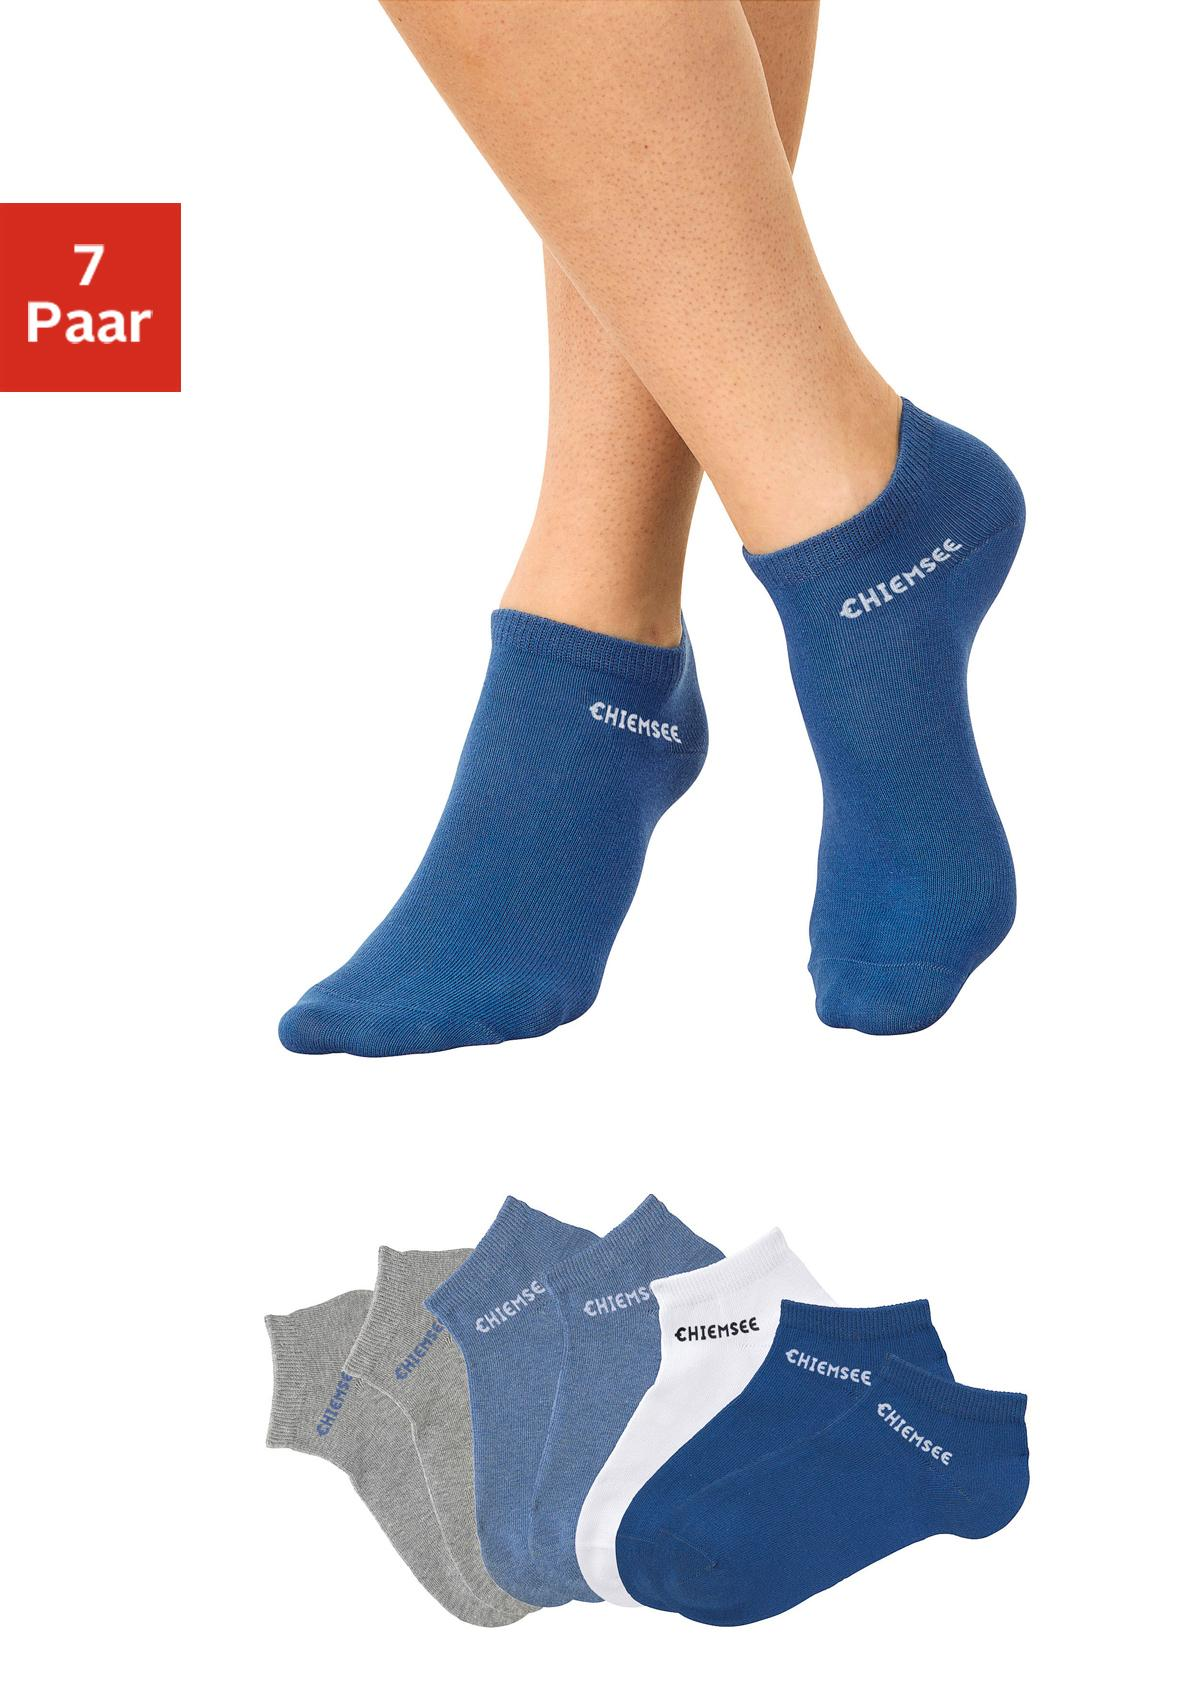 Chiemsee Sneakersocken (7 Paar)